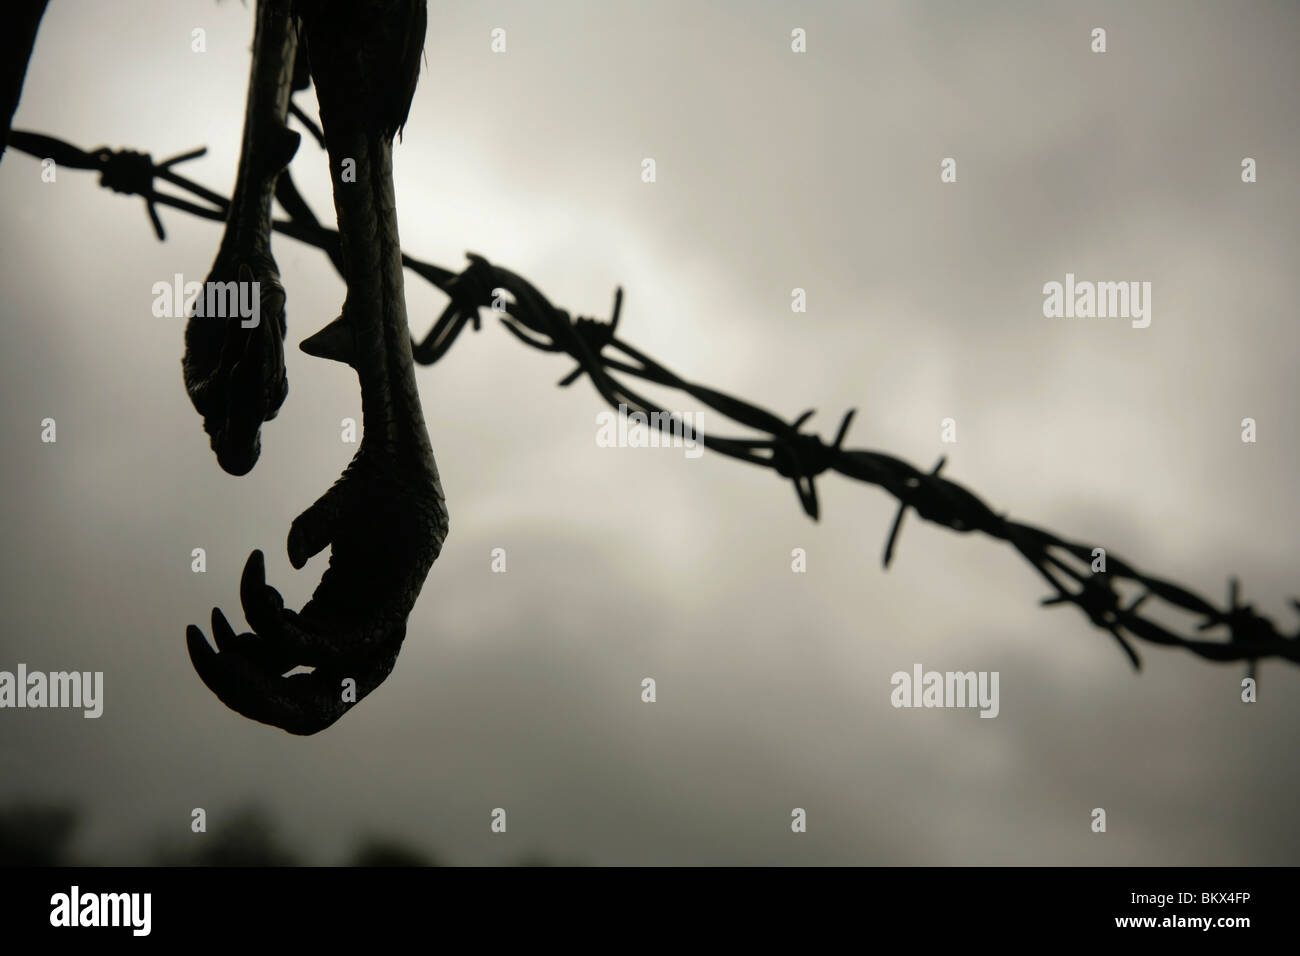 Dead bird\'s feet on barbed wire fence Stock Photo: 29463162 - Alamy